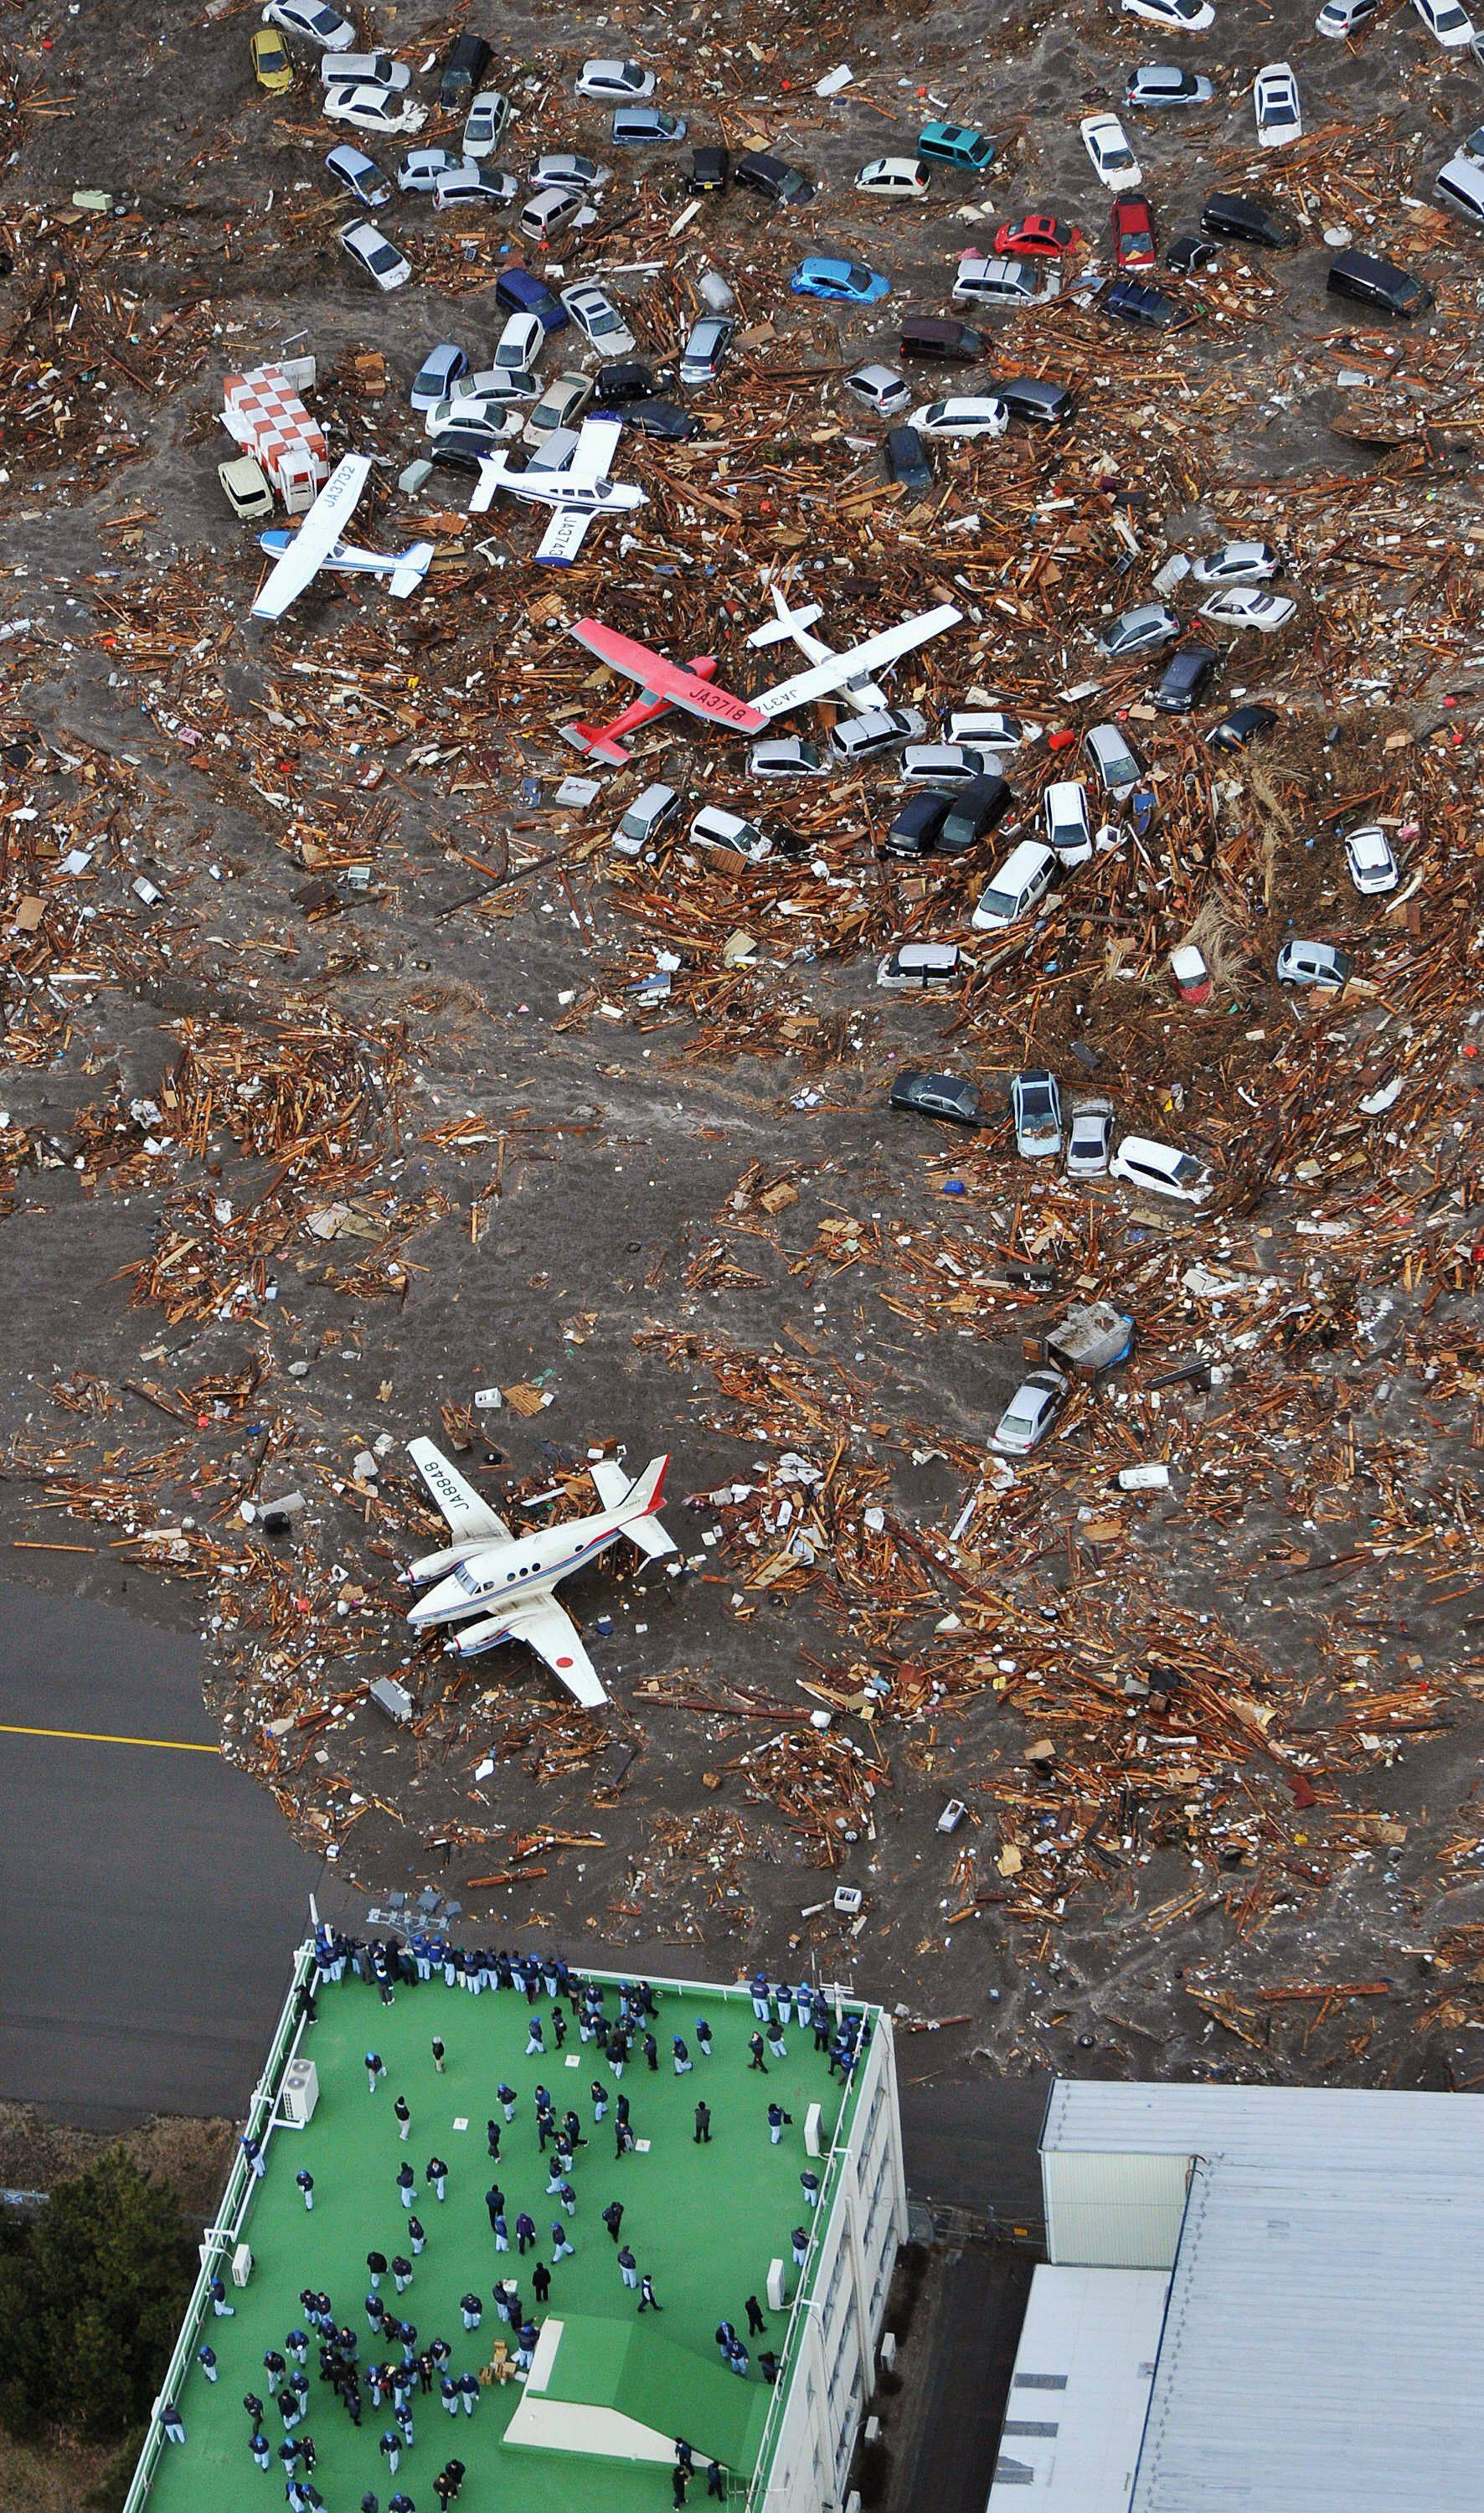 People seek refuge on the rooftop of a building as light planes and vehicles sit among the debris after they were swept by a tsumani that struck Sendai airport in northern Japan on Friday, March 11.